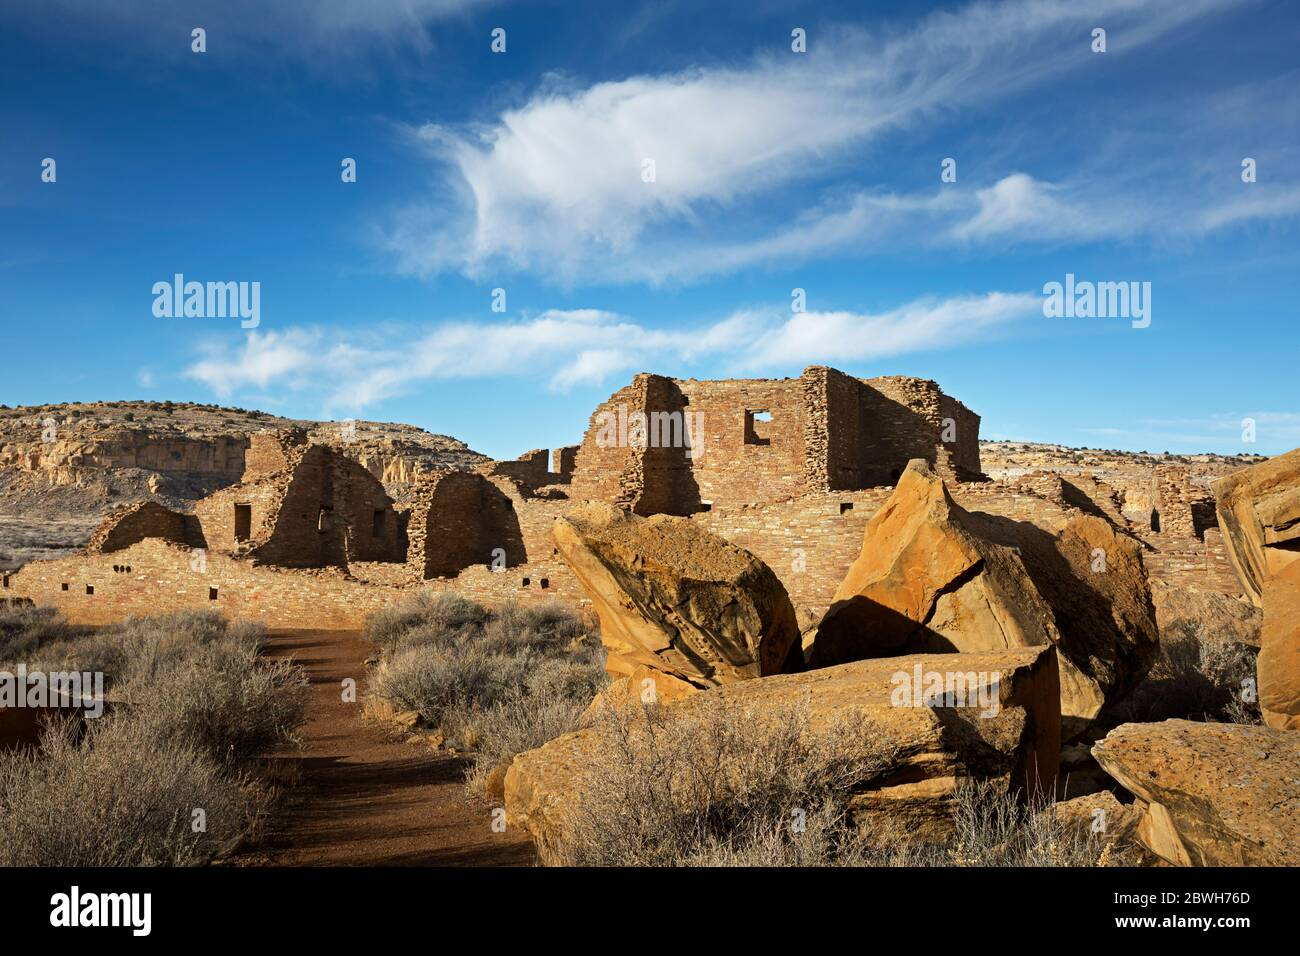 NM00342-00...NEW MEXICO - Pueblo Bonito ruin, a 900 year old dwelling of the Ancestral Puebloans, now part of Chaco Culture National Historical Park. Stock Photo